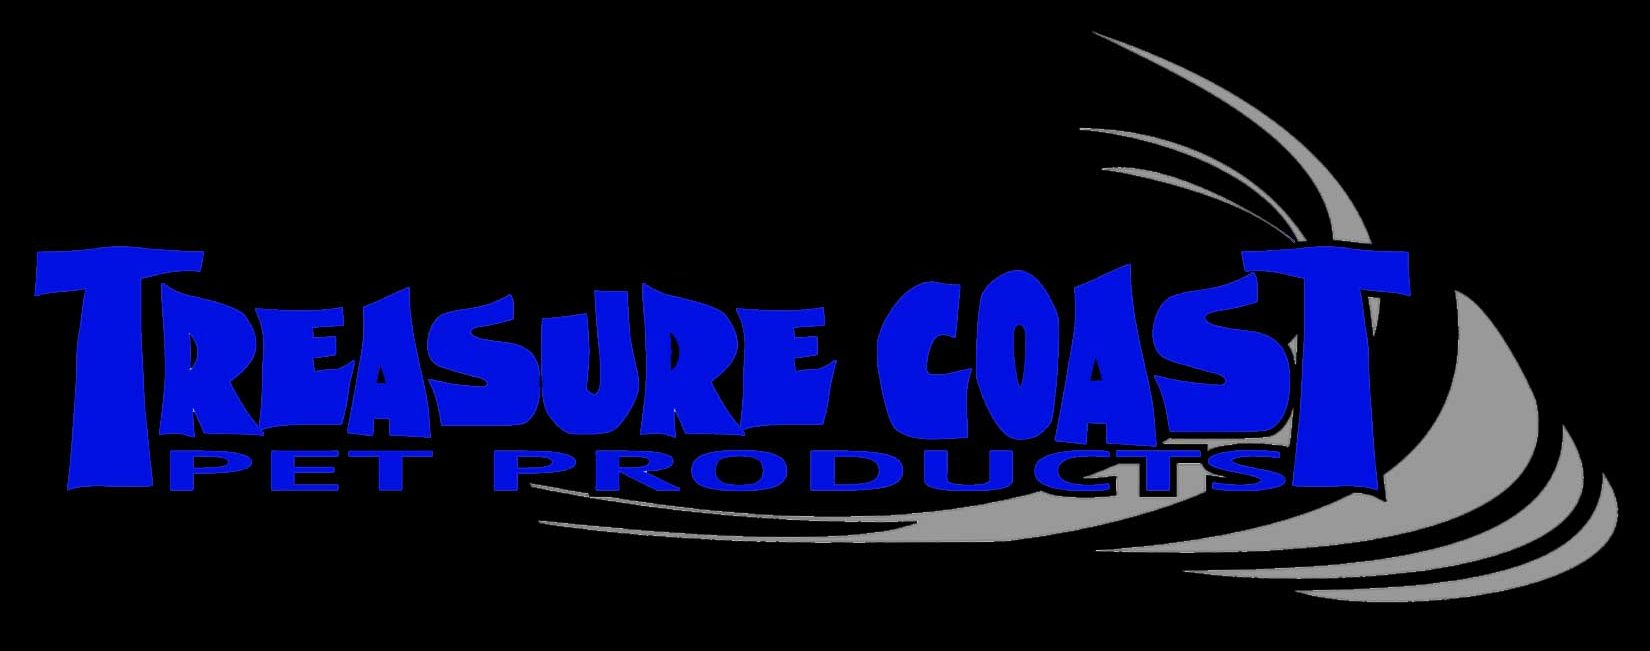 cropped-treasure-coast-logo-blue-1-3.jpg